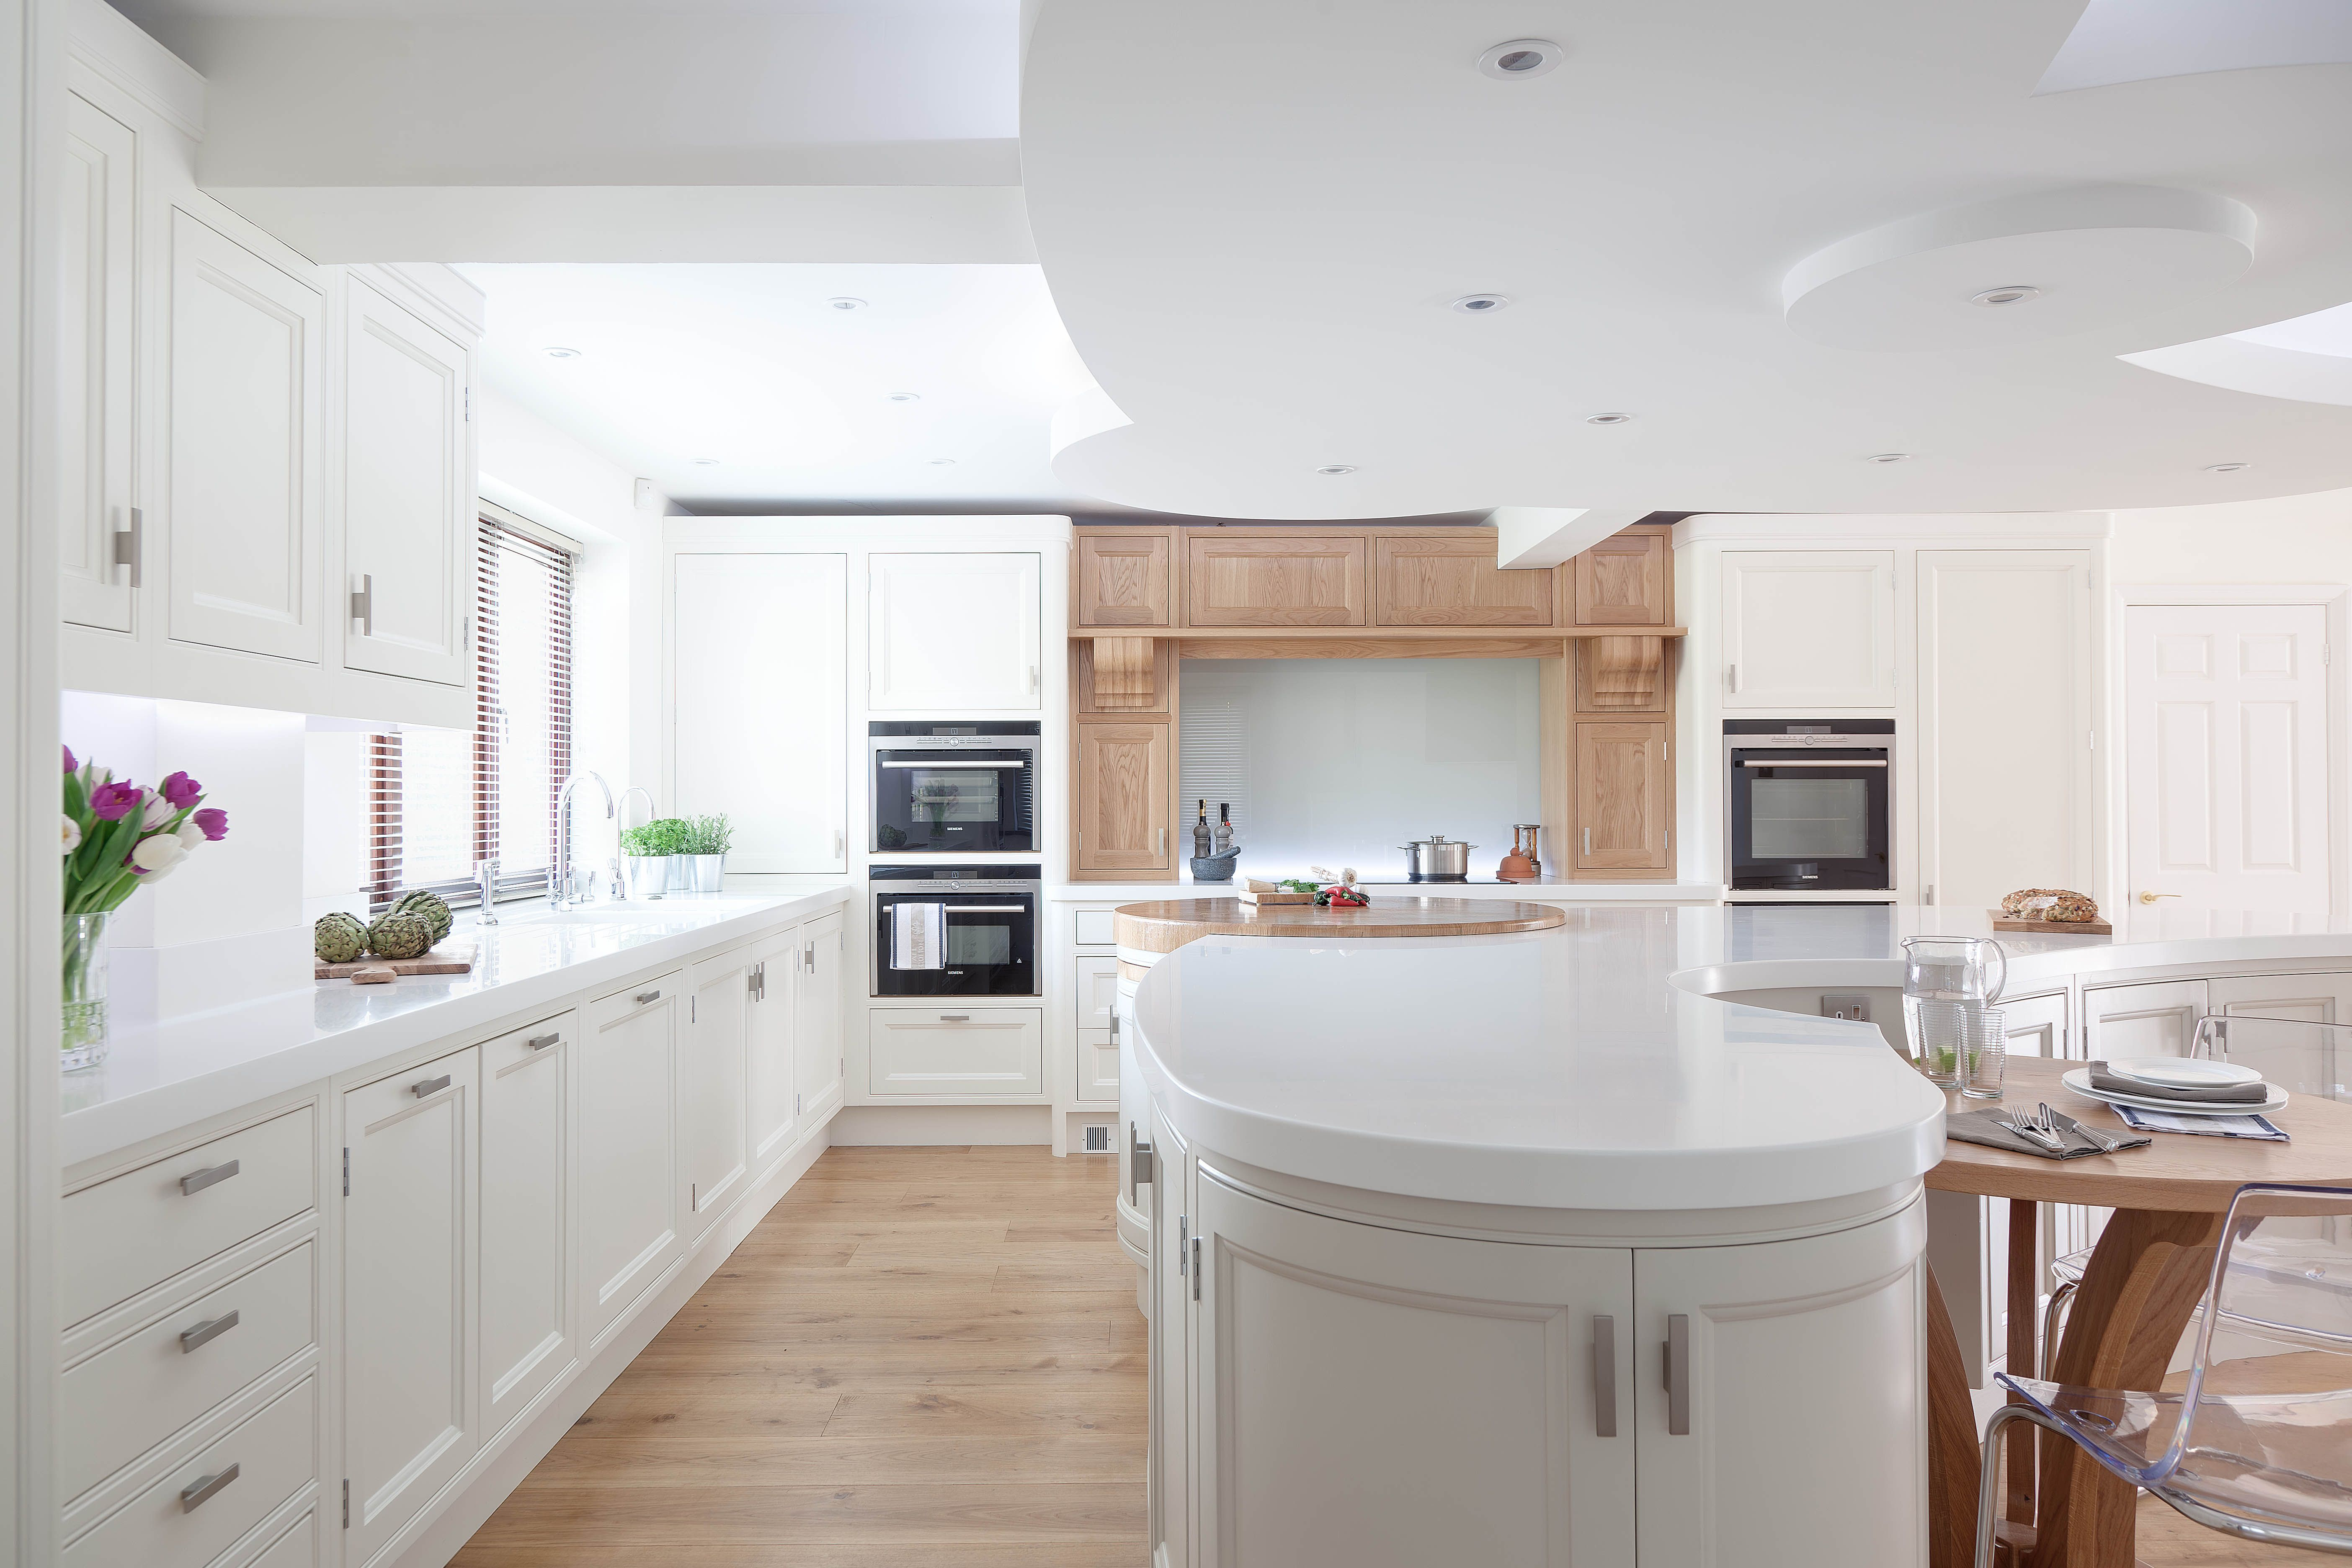 The brief was to design a kitchen that was large, spacious with ...